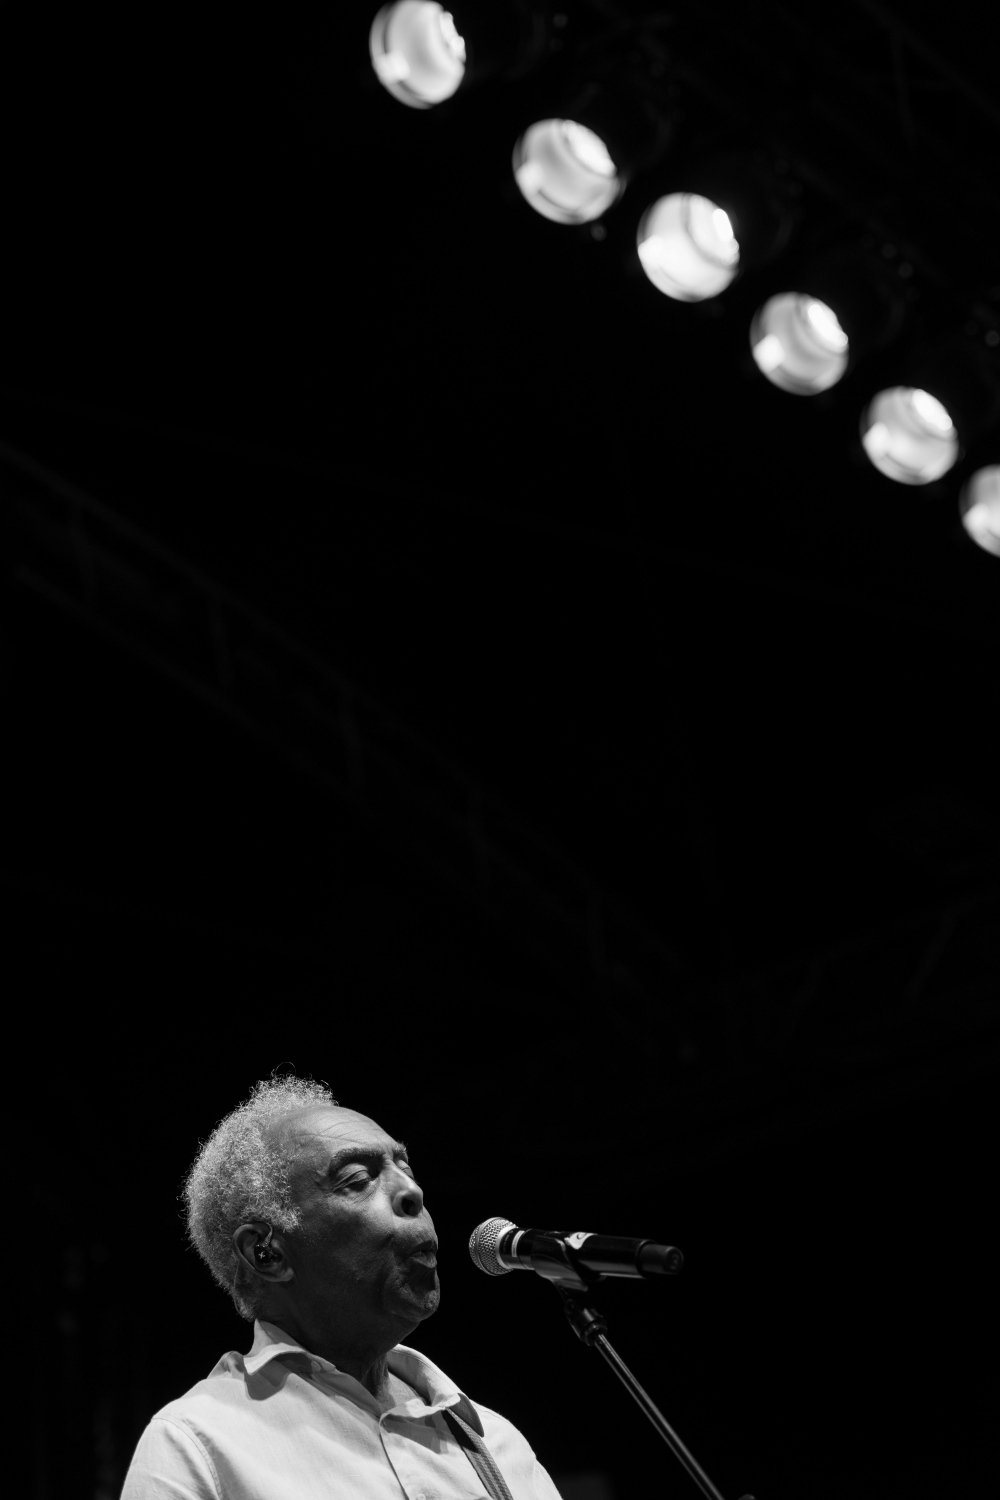 World-famous Brazilian musician Gilberto Gil whistles during a song at his concert. Wassermusik Festival, Berlin, July 14, 2019.